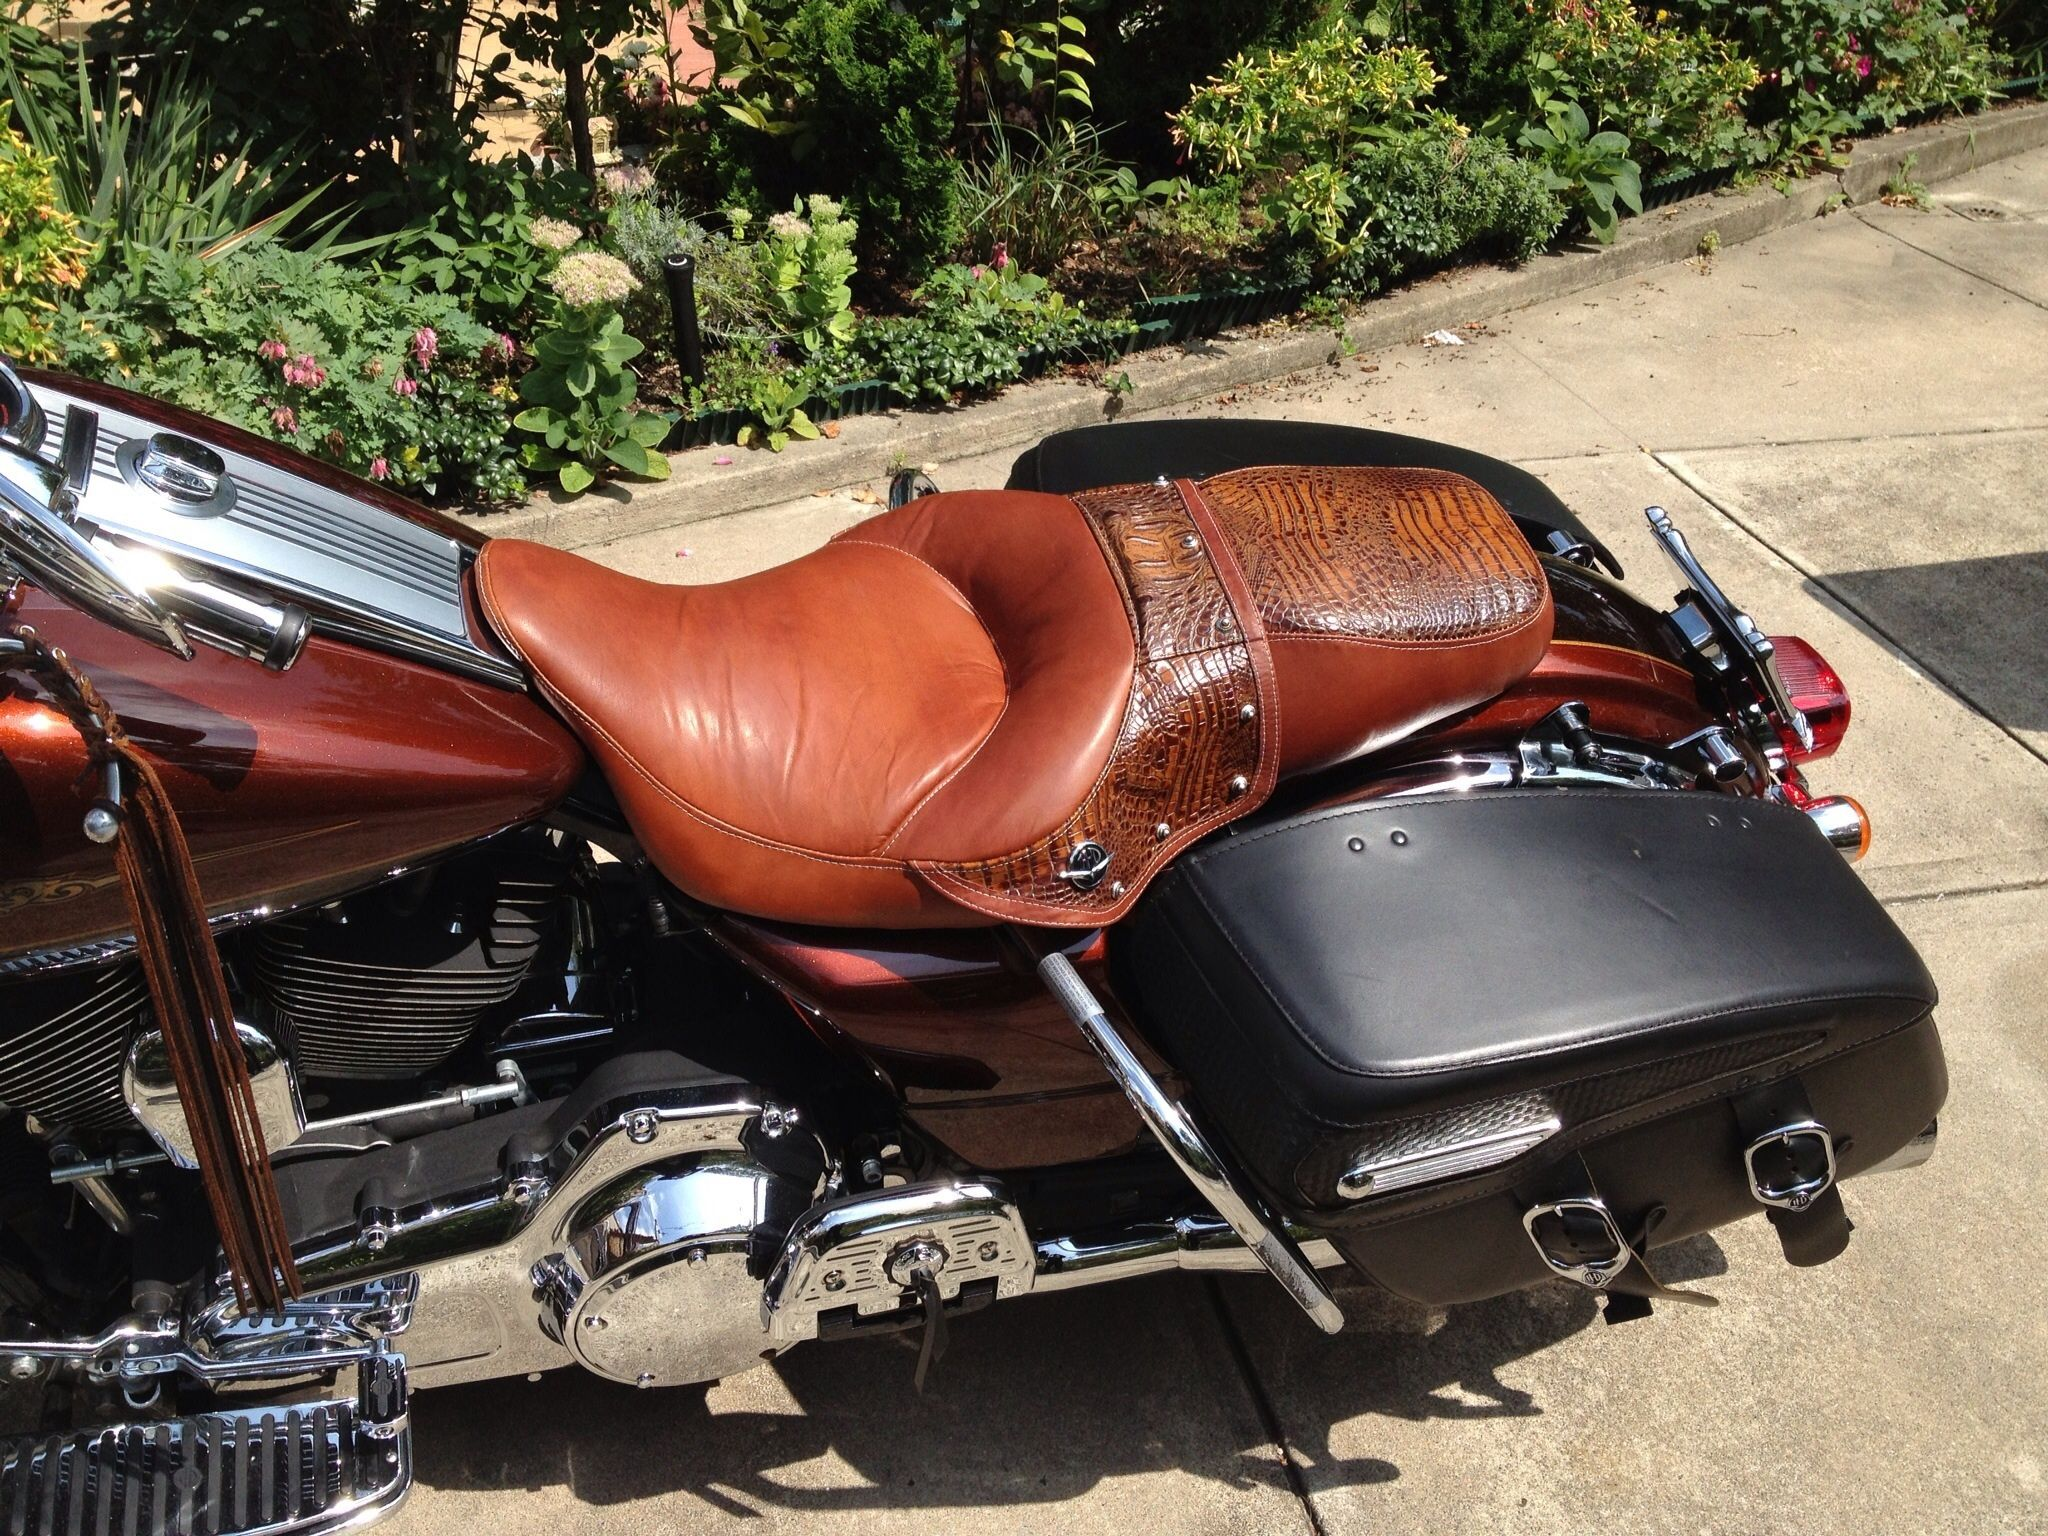 Custom Saddle Leather With Croc And Studs A Wrinc Design Exclusive Only At Wrinc Etsy Leather Saddle Bags Bike Leathers Harley Davidson Seats